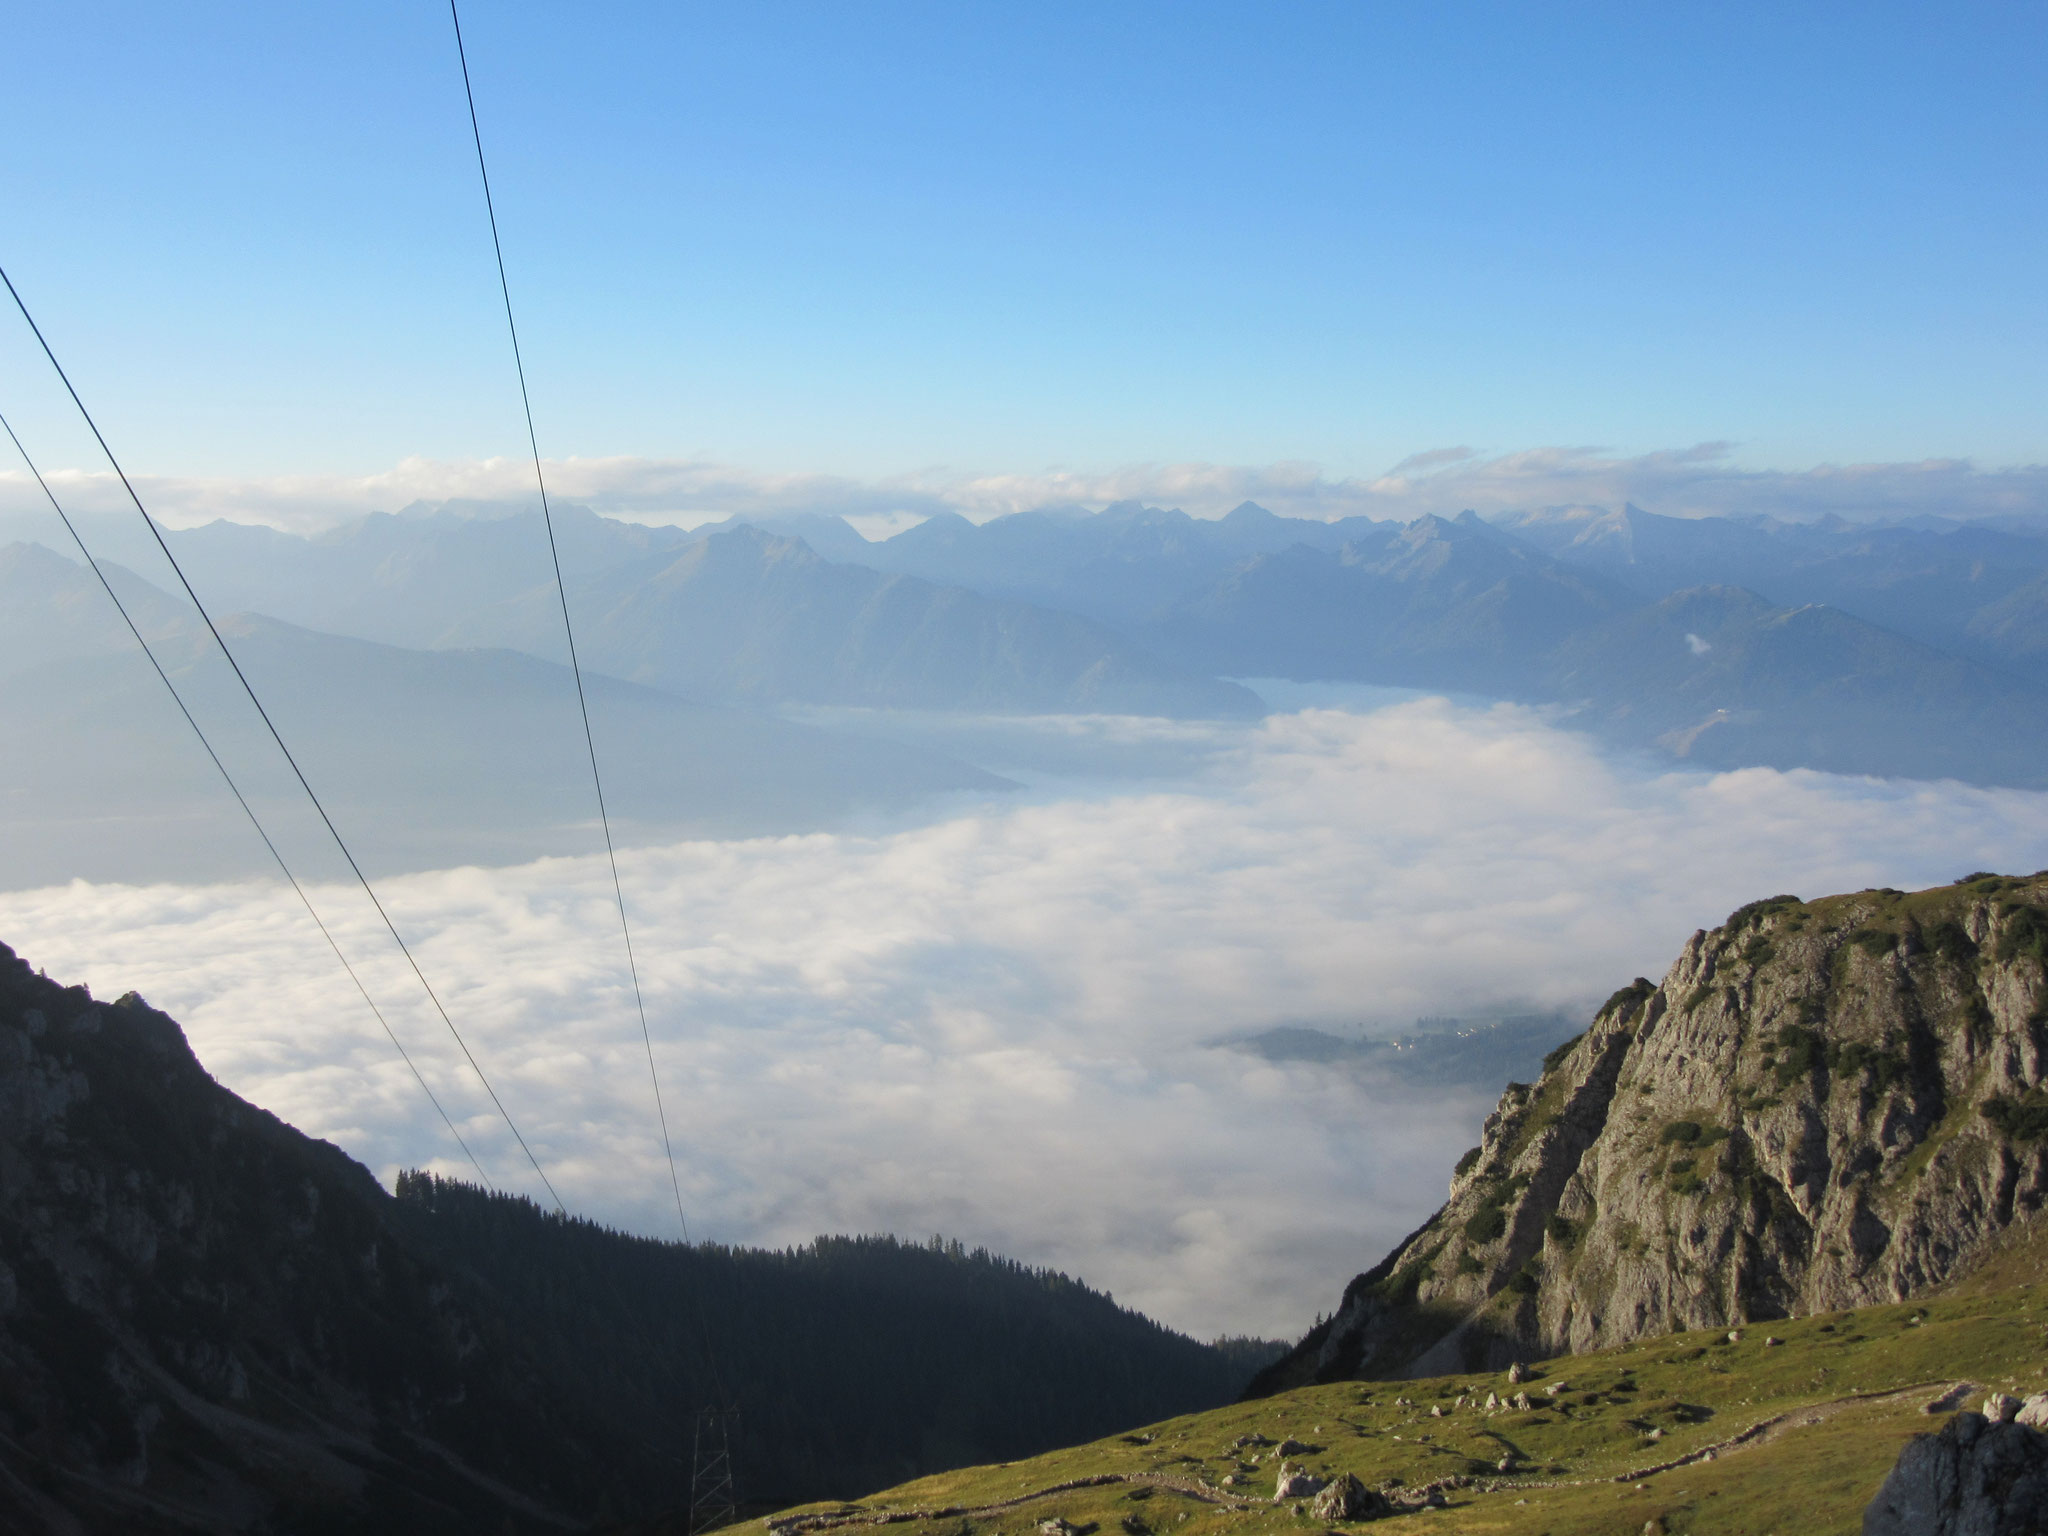 Early morning view from the Guttenberghaus - Ramsau under cloud